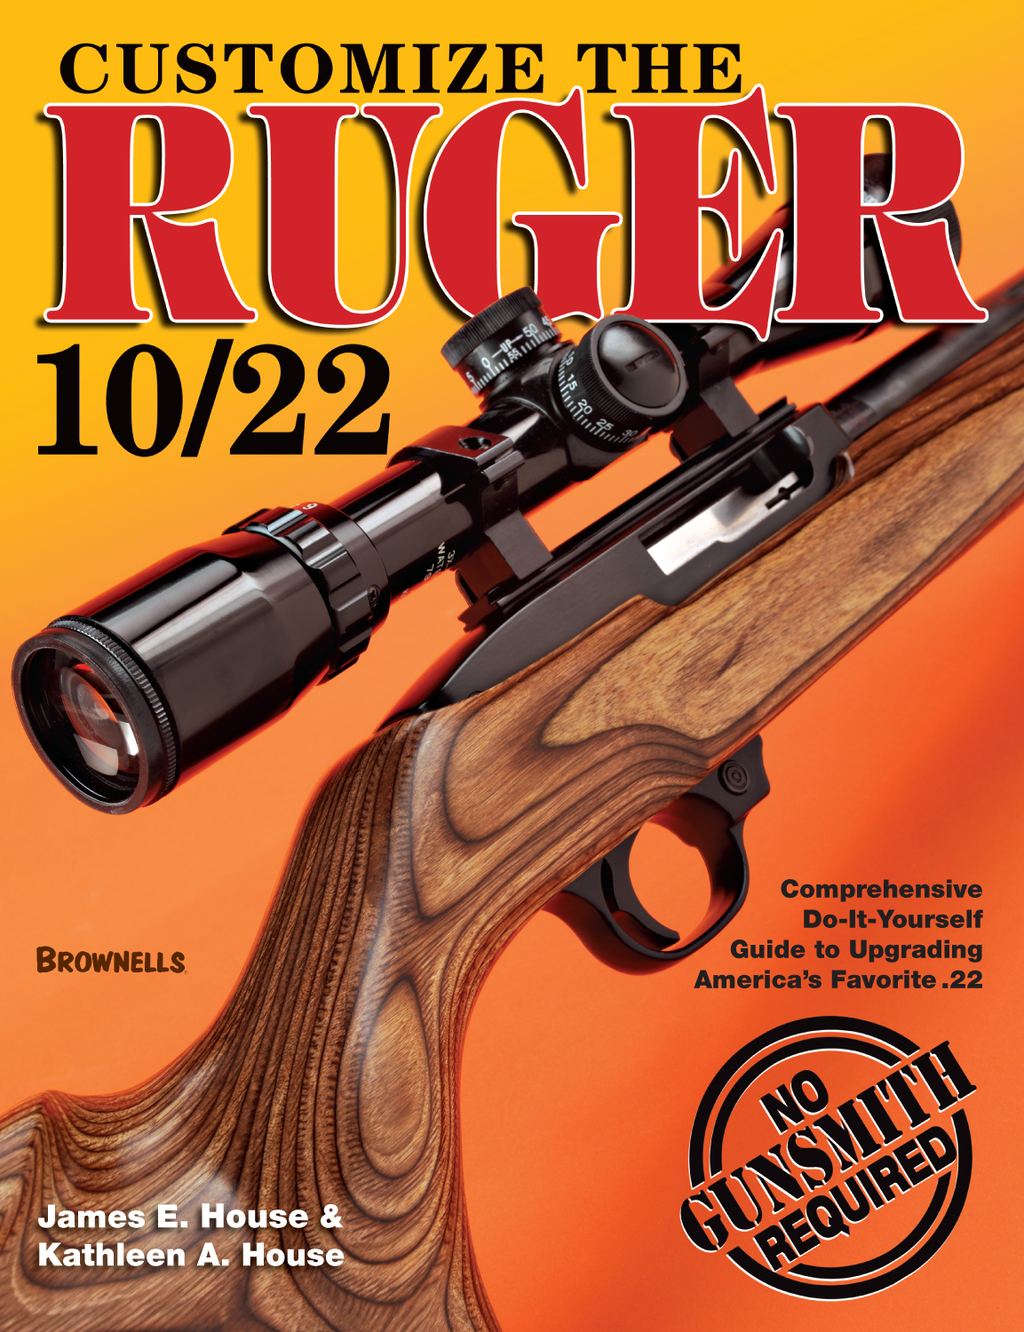 Customize the Ruger 10/22 By: James E. House